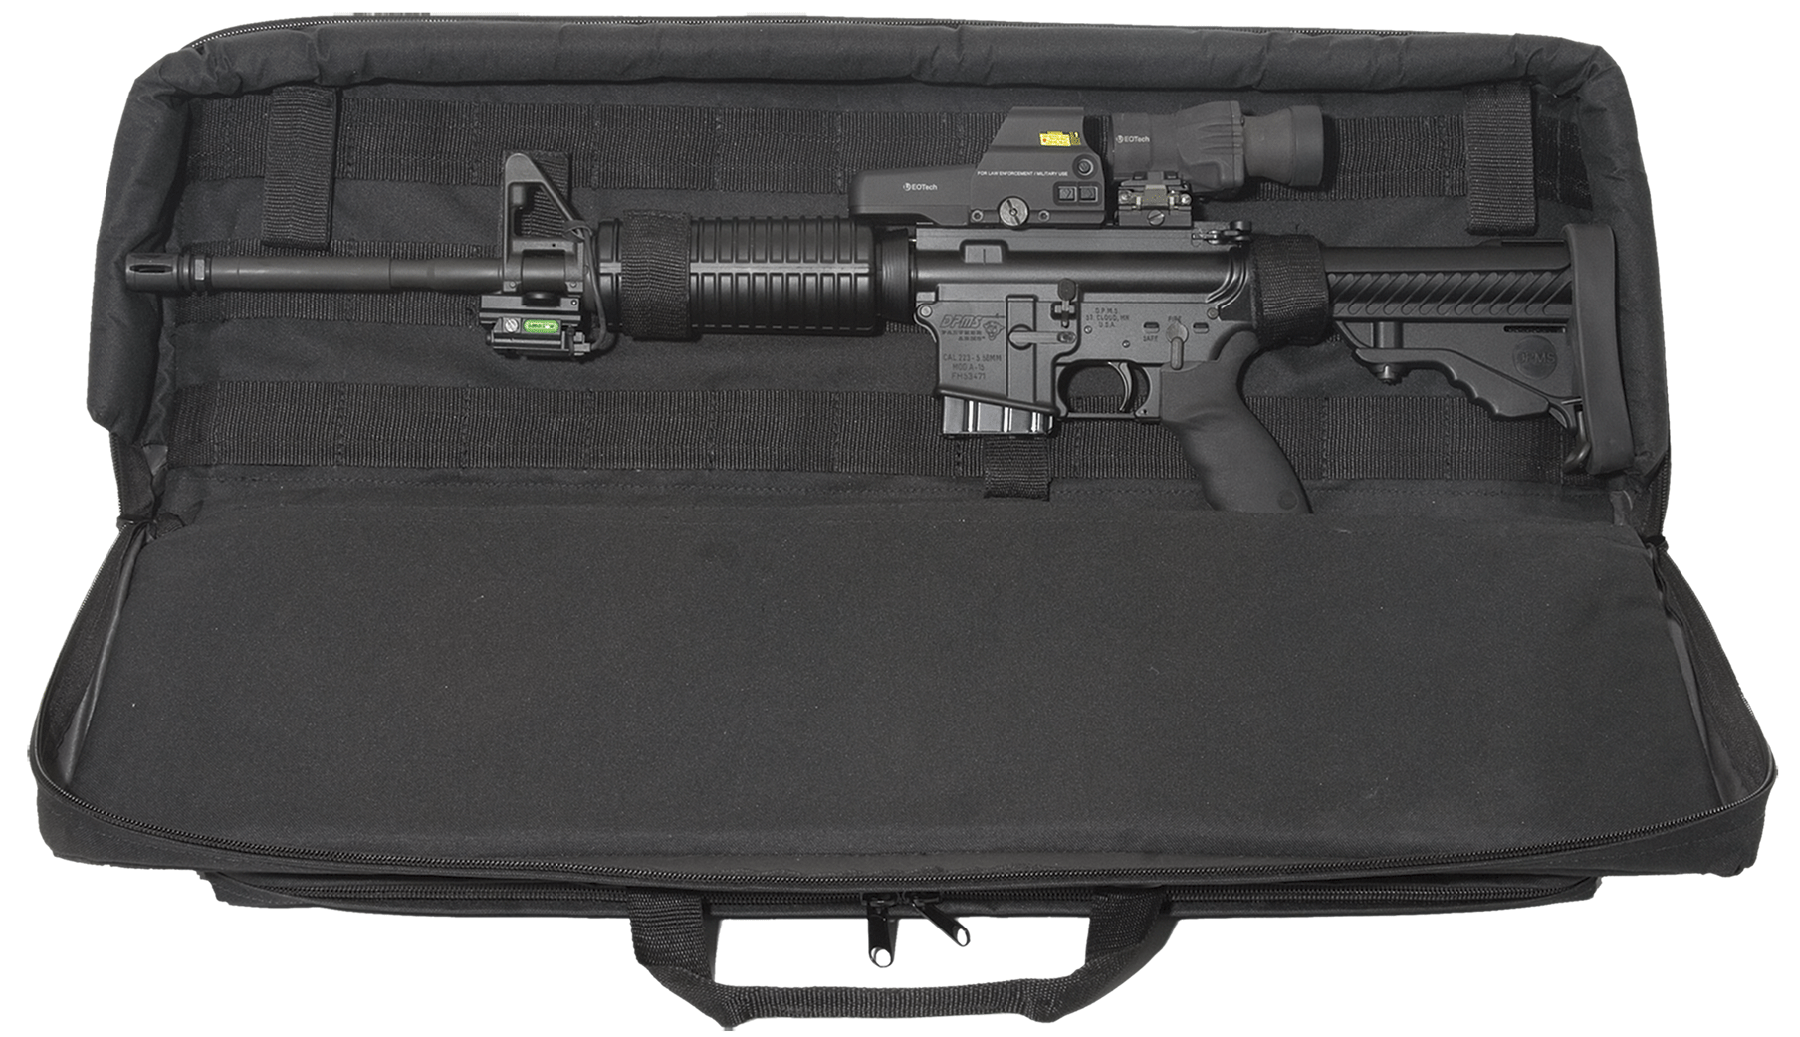 Max Ops 28123 Tactical Backpack Rifle Case 33